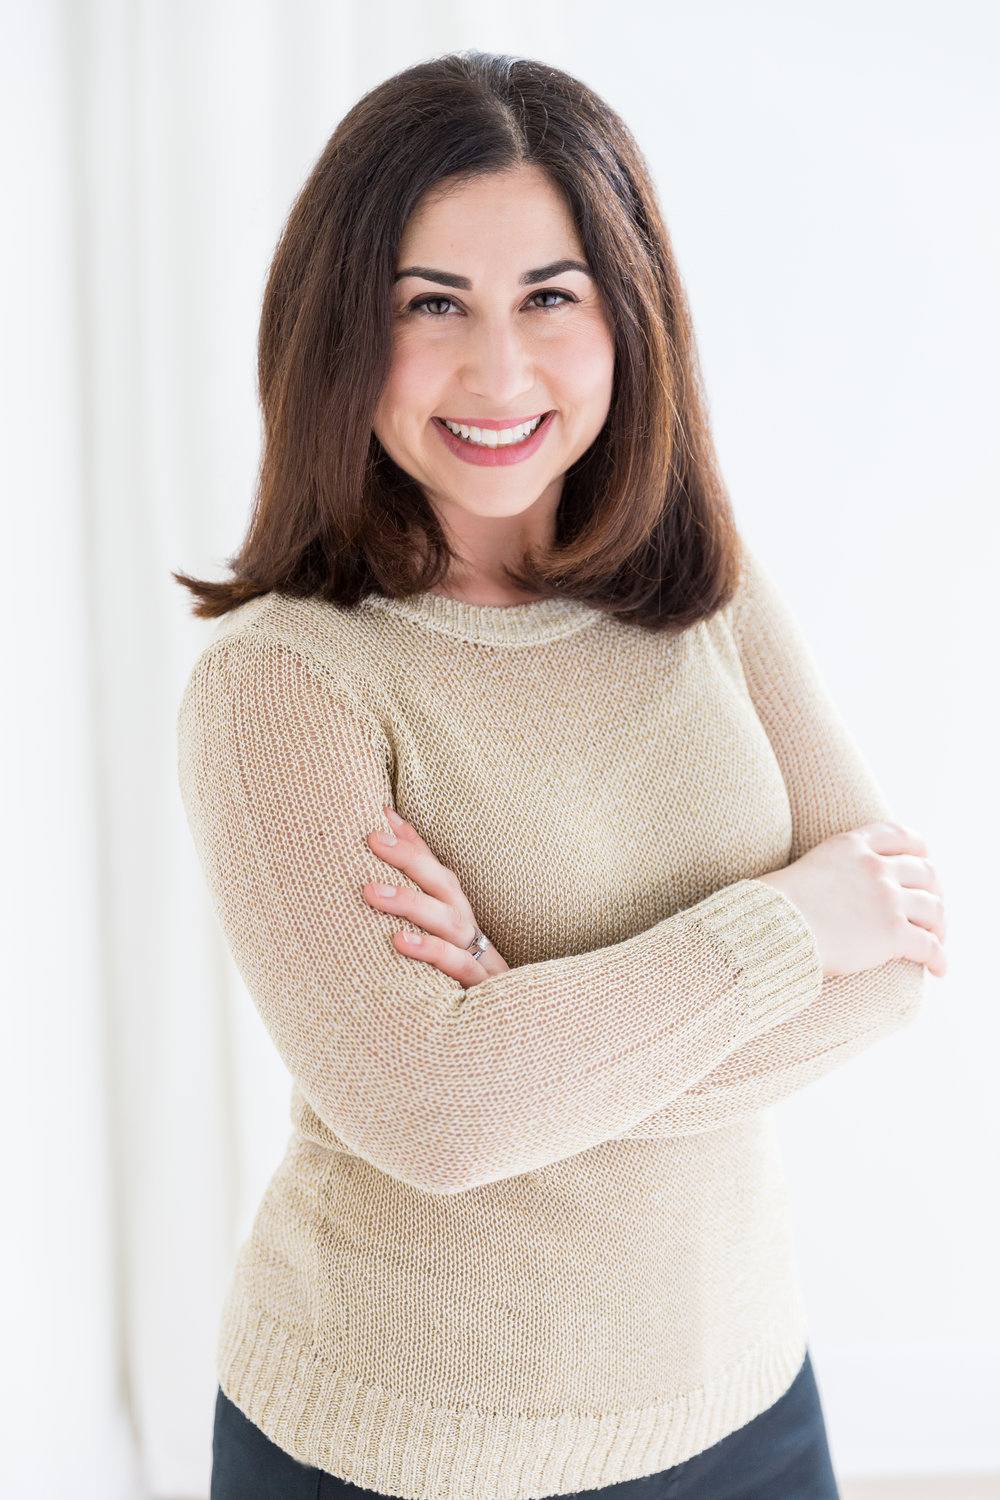 Rachel Freedman, Ph.D. - I am a licensed psychologist with over 12 years of clinical experience.